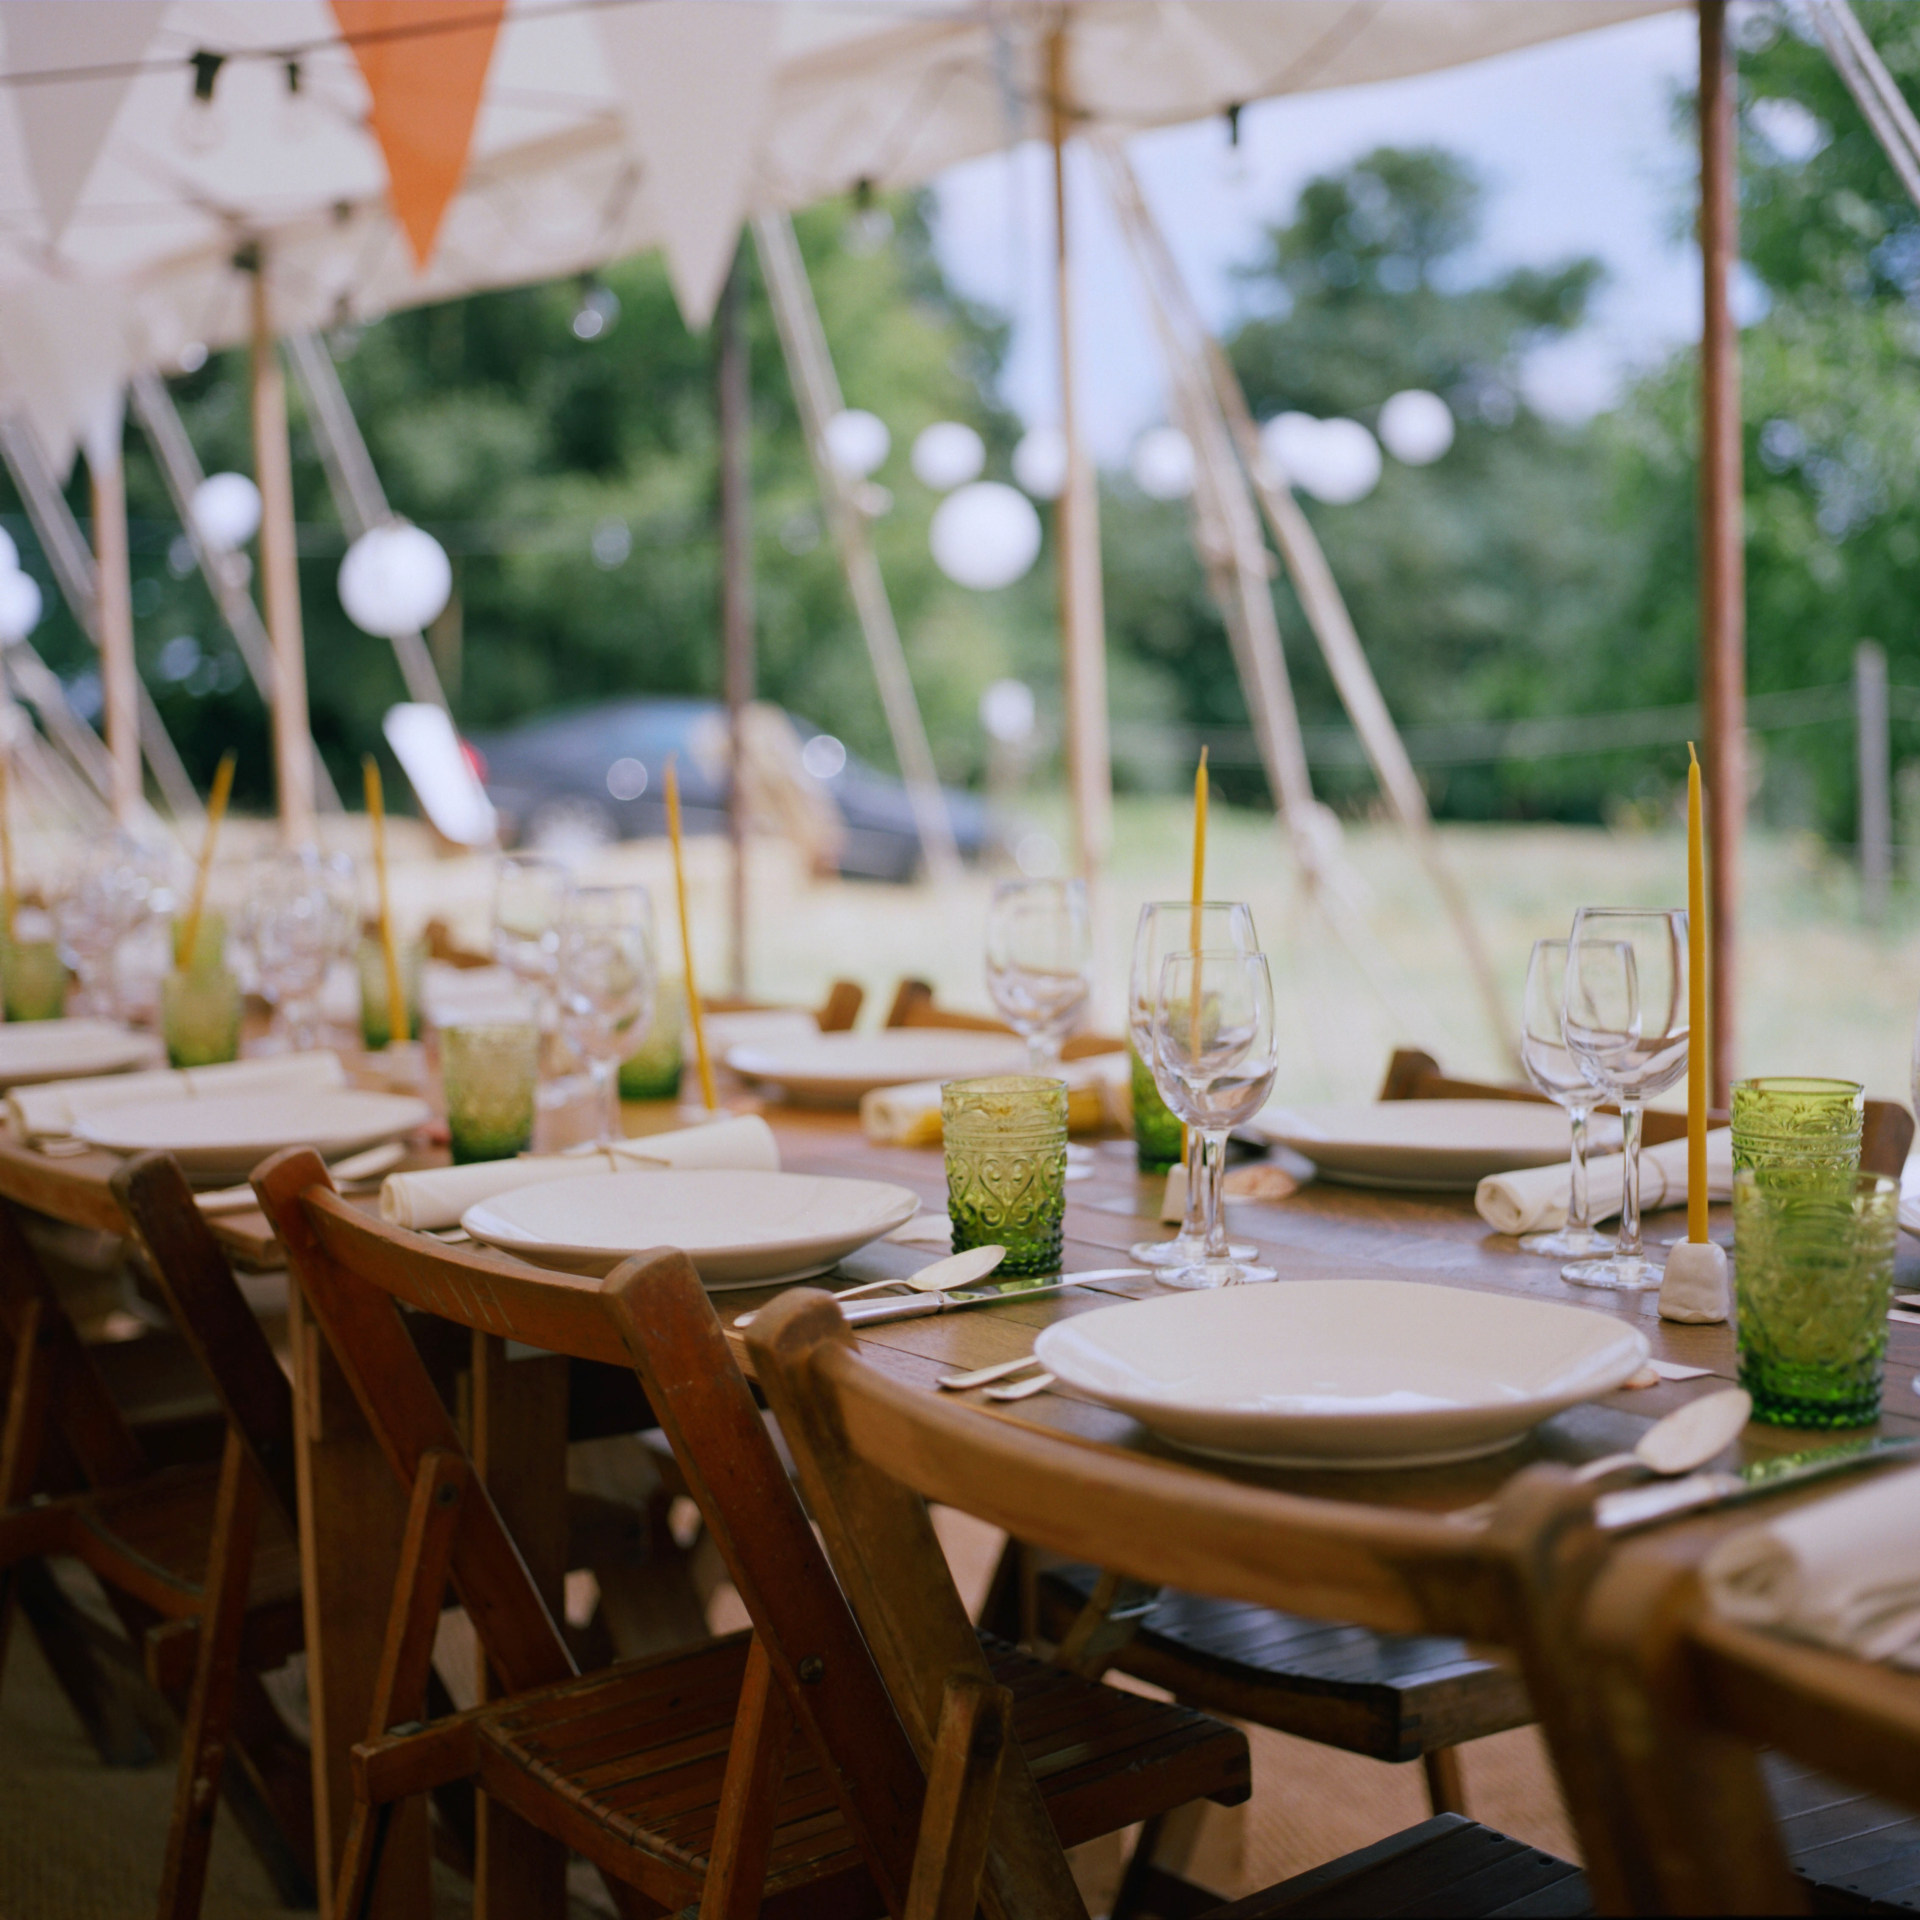 Look at these stunning photographs we've just received from an enchanting summer wedding we supplied our tables and chairs for... Thanks Katie! And these shots are taken on film by the talented Jonathan Cherry WOW! Thanks again guys, What a beautiful wedding #rustic #wedding #english #festival #style #countryside #meadow #vintagewedding #vintage #handmade #bespoke #natural #naturalwedding #wooden #furniturehire #hire #tables #chairs #woodentables #bars #mobilebar #trestletables #woodtables #benches #summerwedding #countrysidewedding